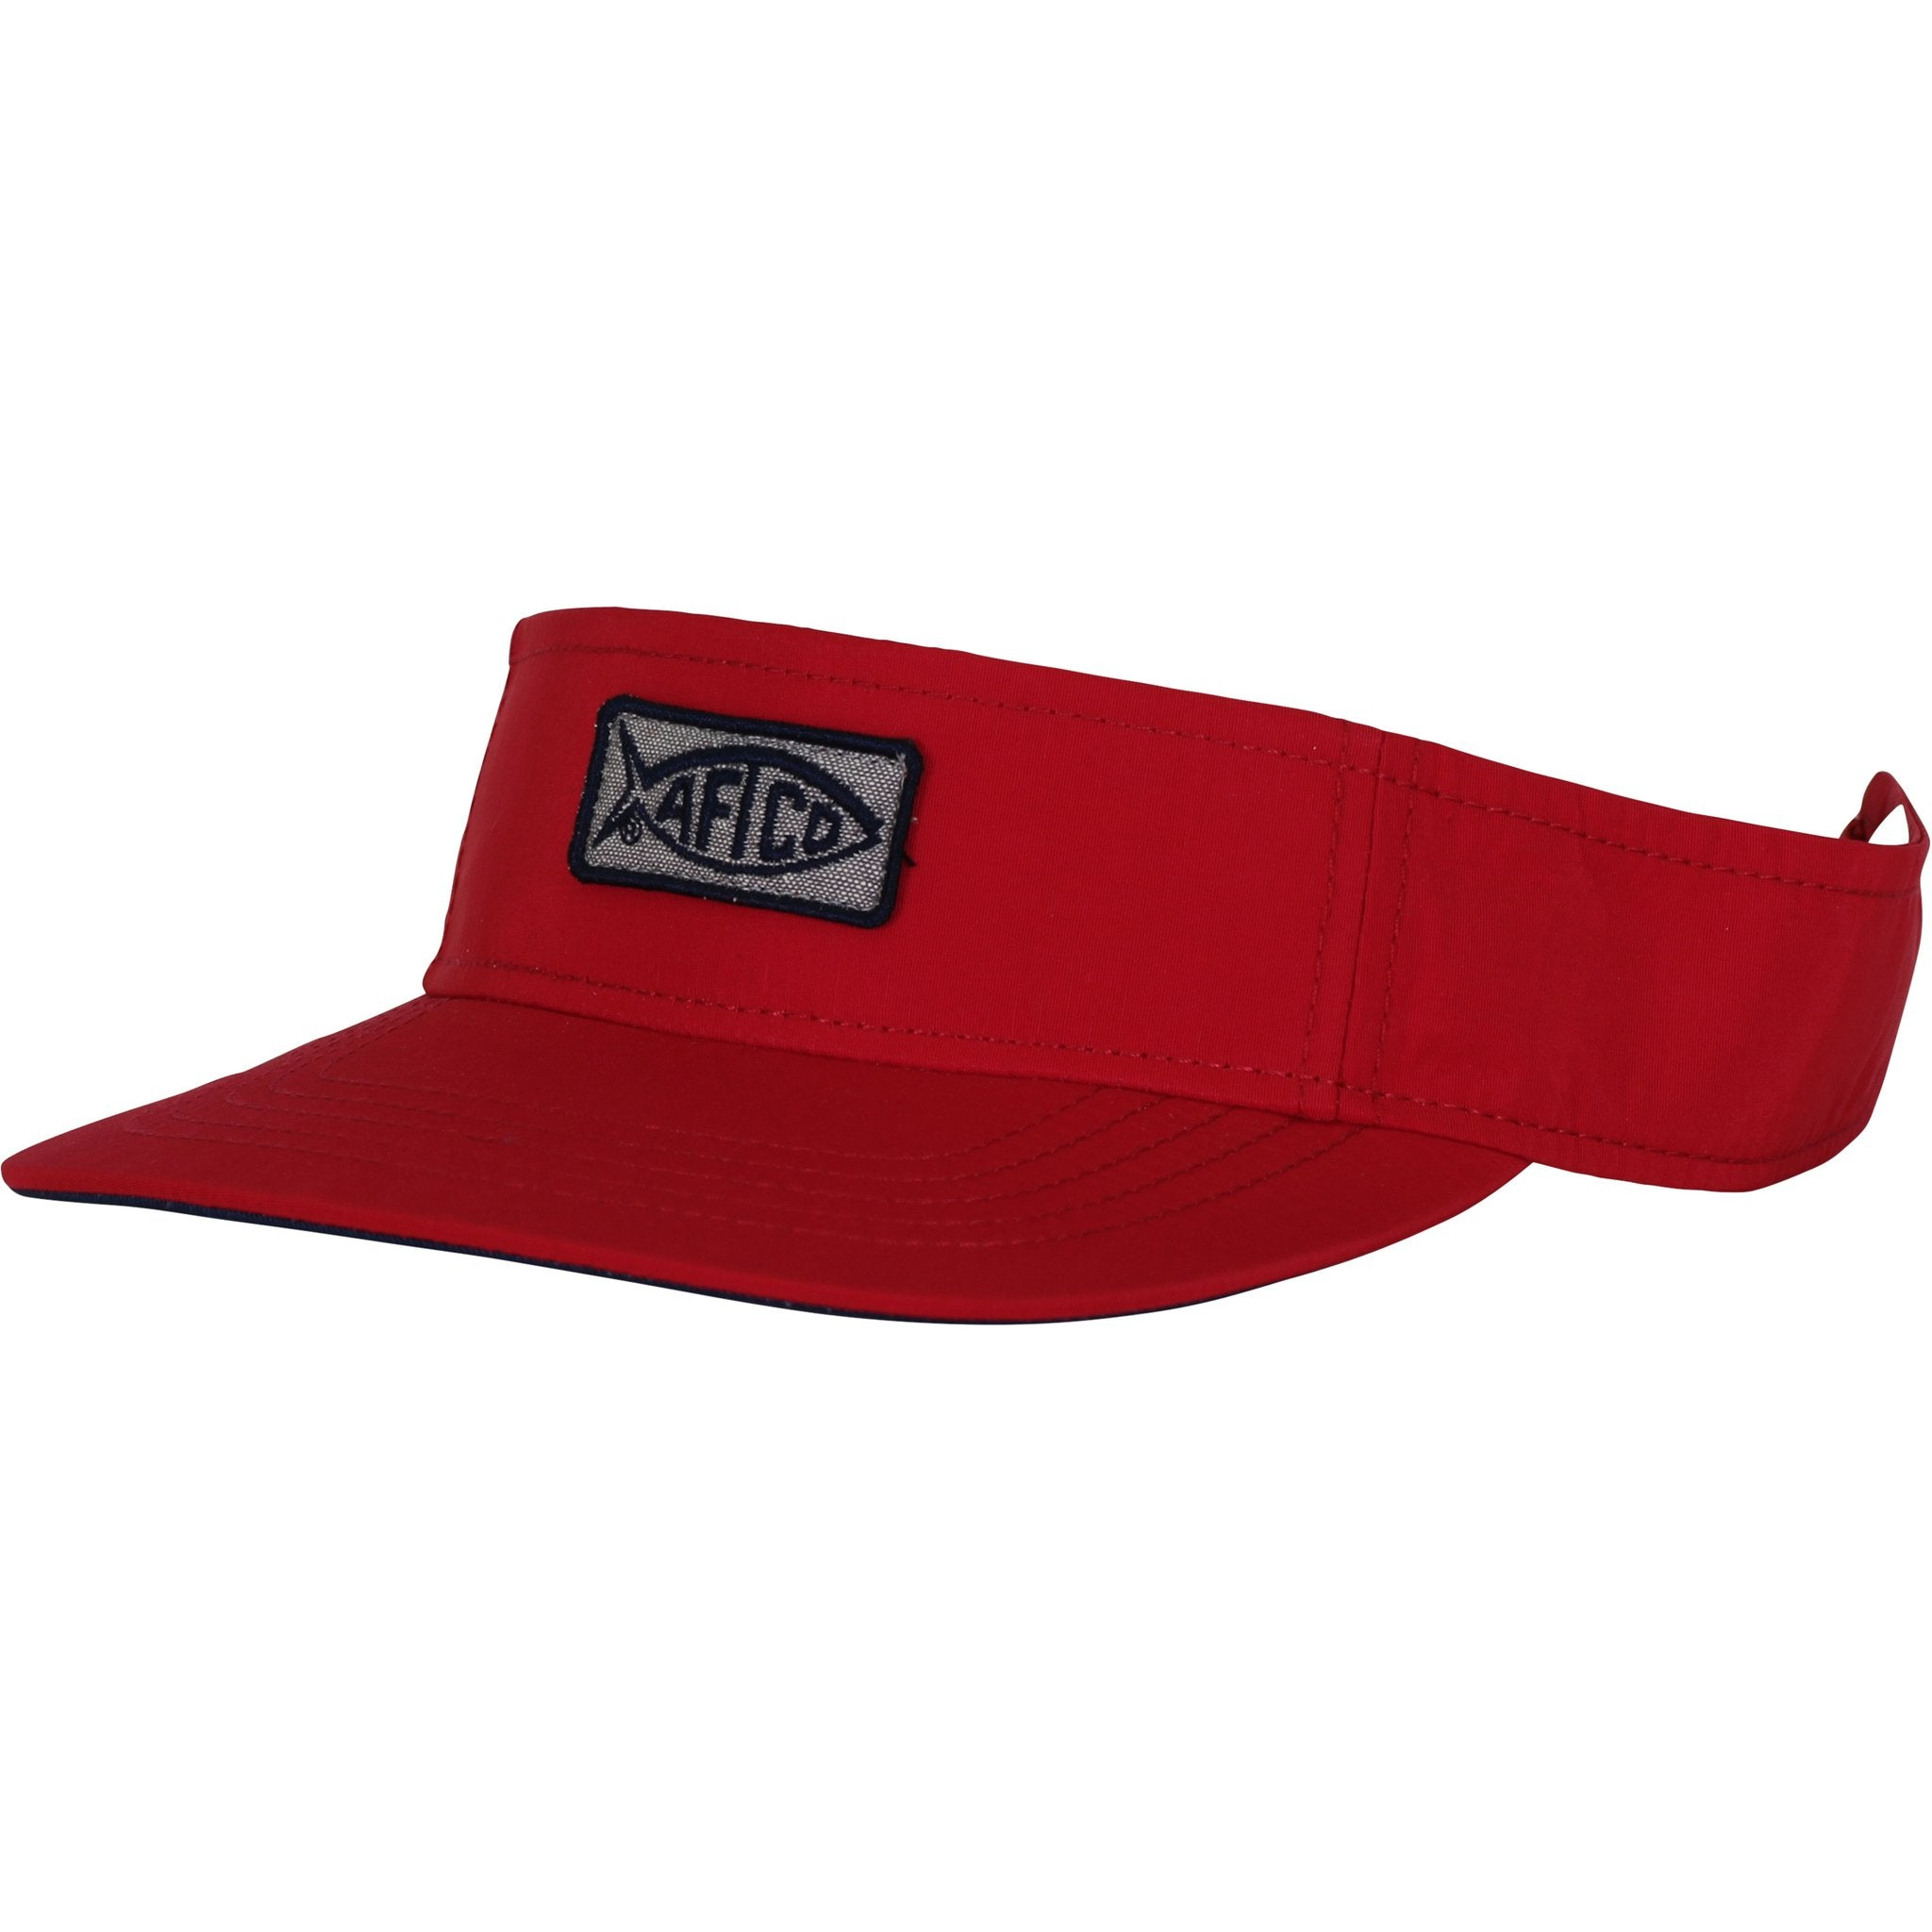 ORIGINAL FISHING VISOR